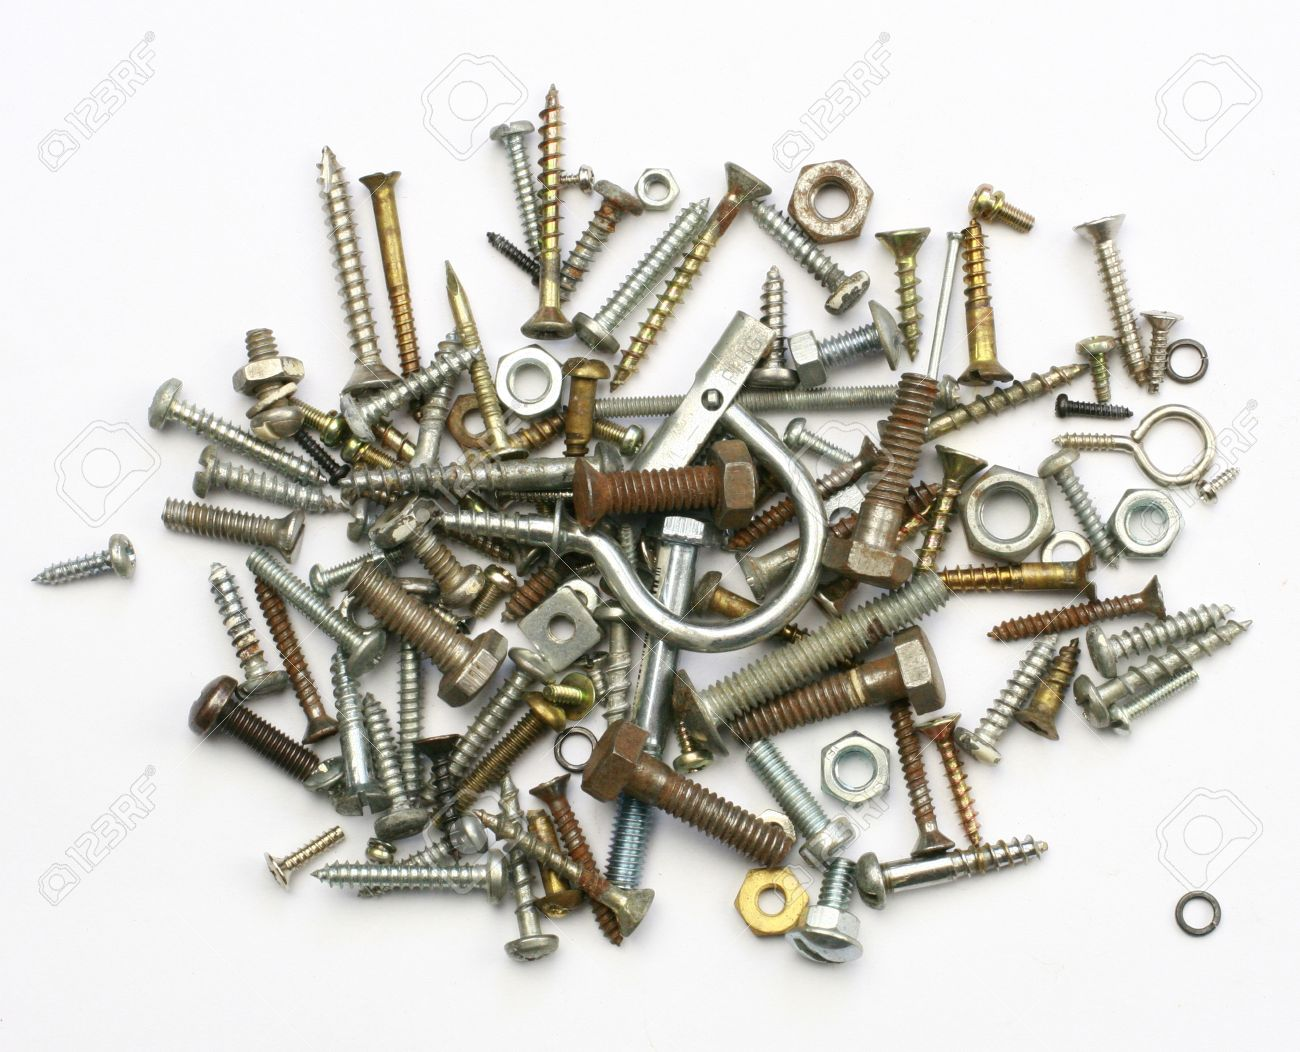 A Pile Of Nuts Bolts Screws And Other Fasteners On A White Background Stock Photo Picture And Royalty Free Image Image 47651092